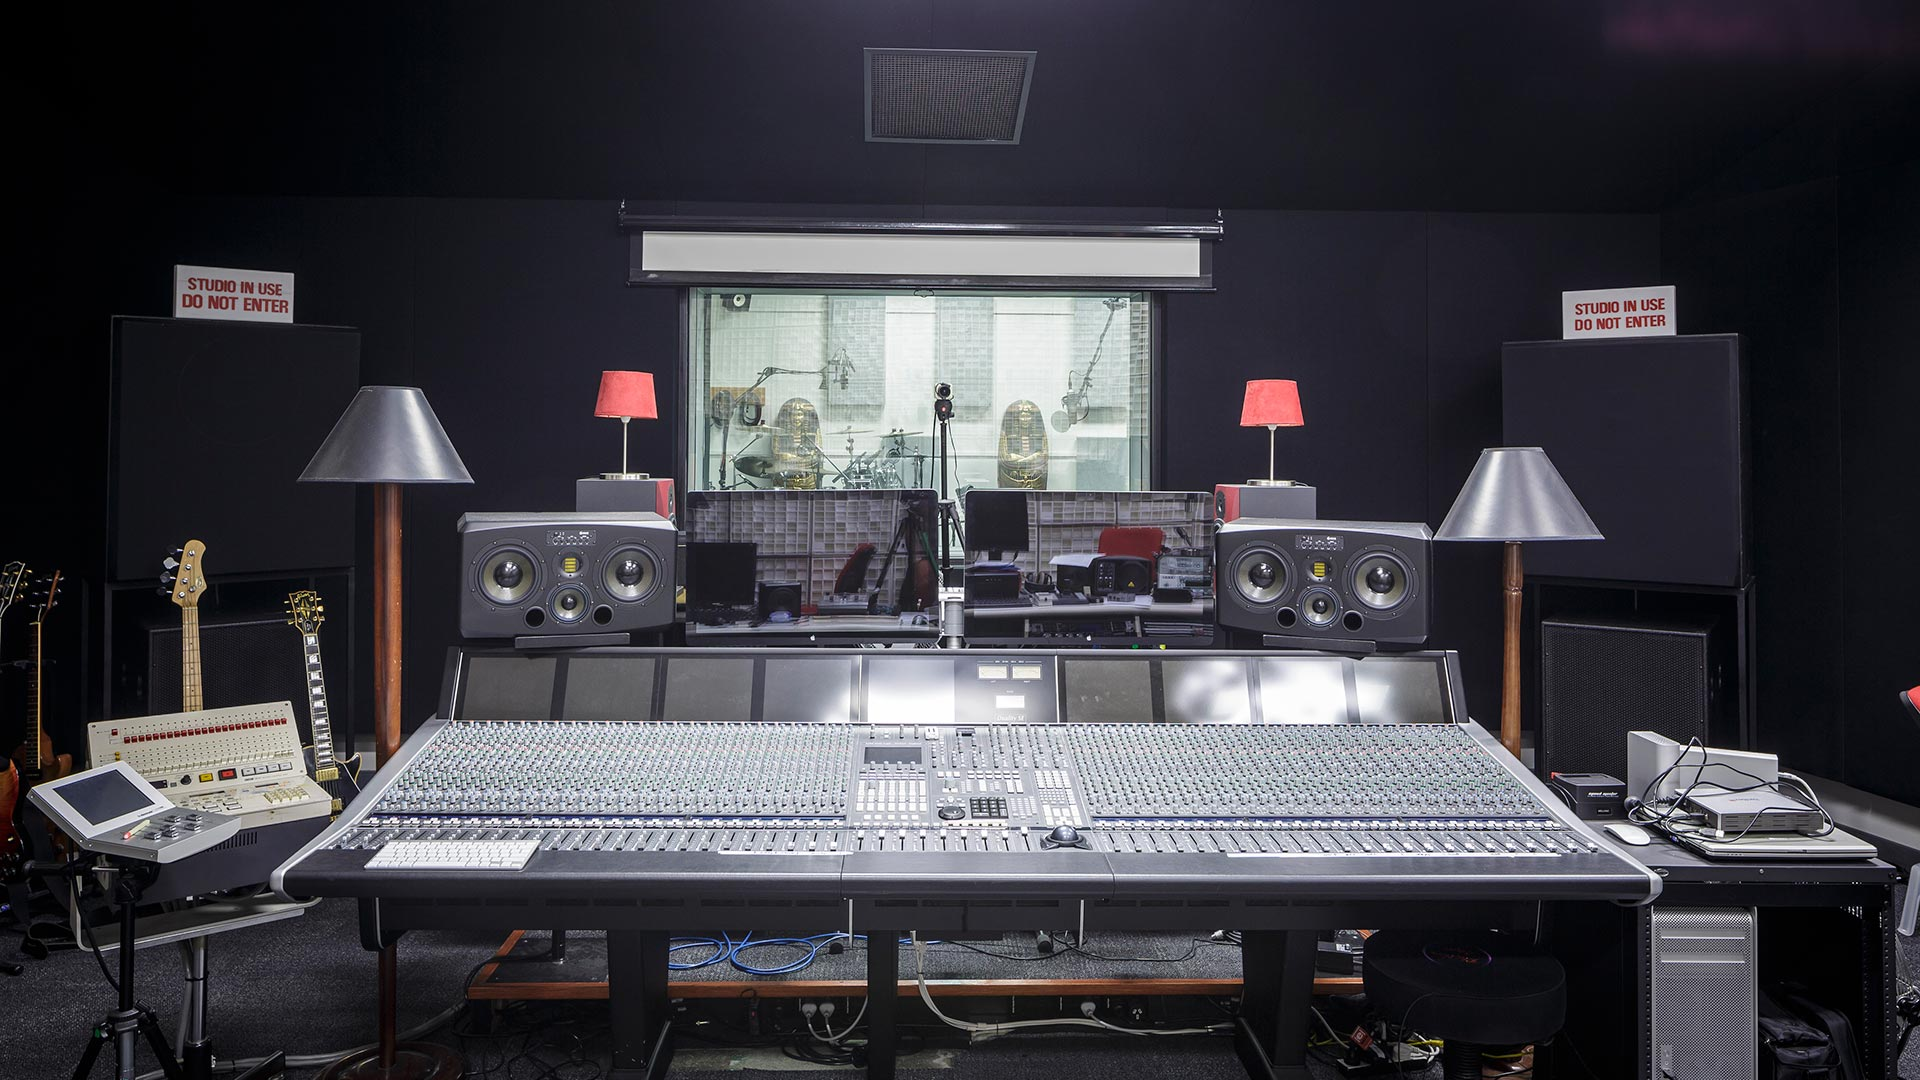 south-bank-facilities-creative-spaces-music-and-recording-studios-03.jpg